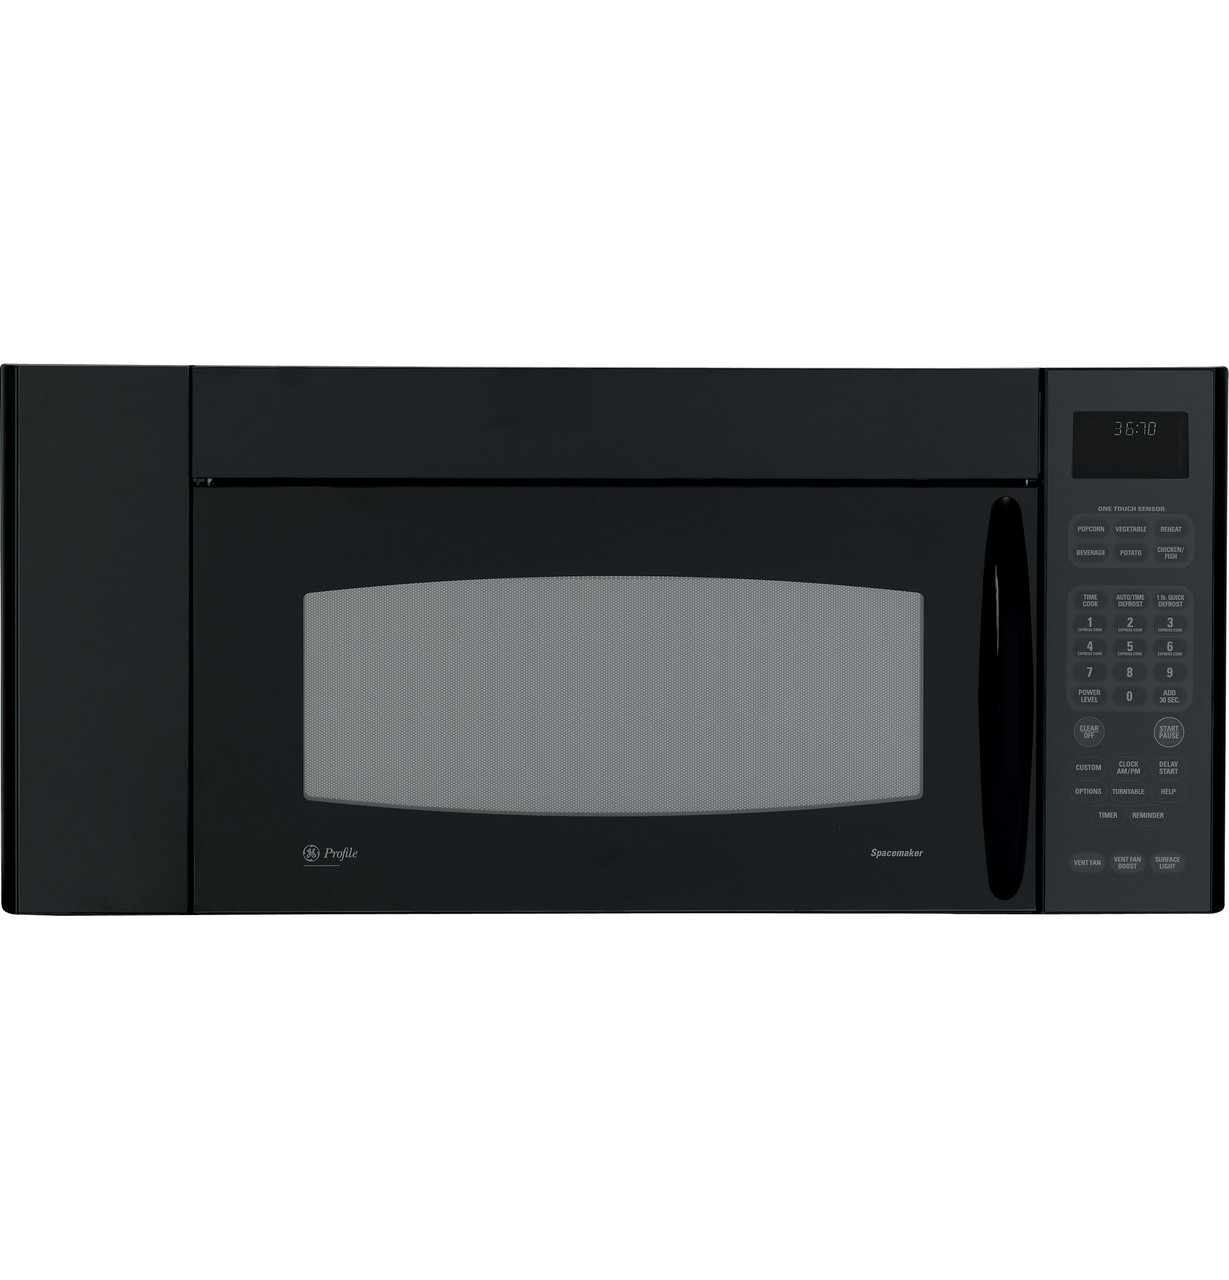 ge profile spacemaker xl 1800 36 microwave oven jvm3670bf